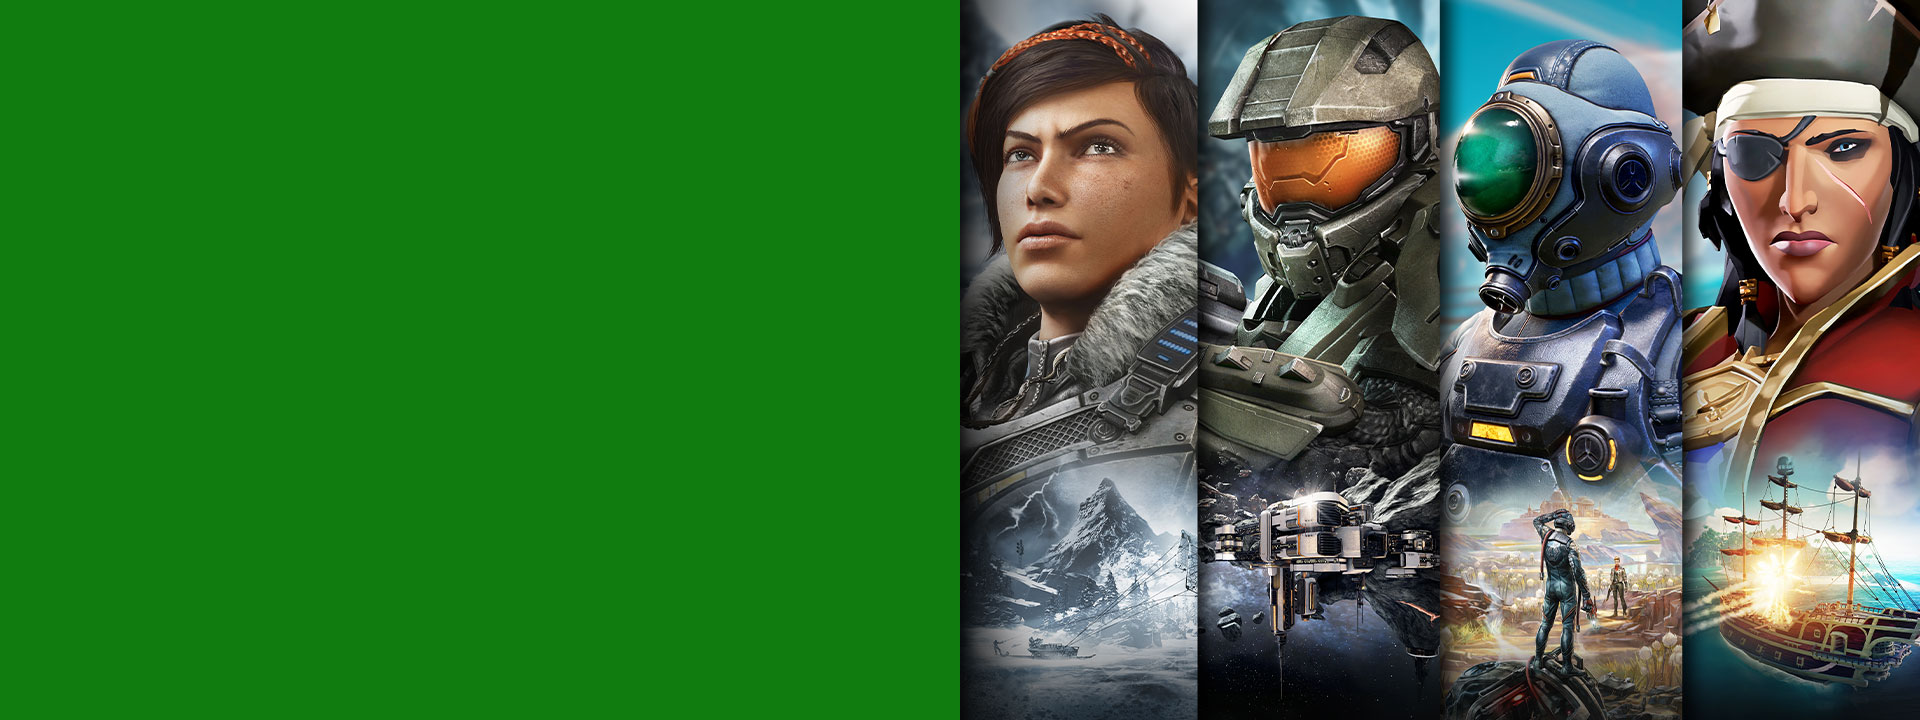 Xbox Game Pass-spelkaraktärer från Gears 5, Halo, The Outer Worlds och Sea of Thieves.